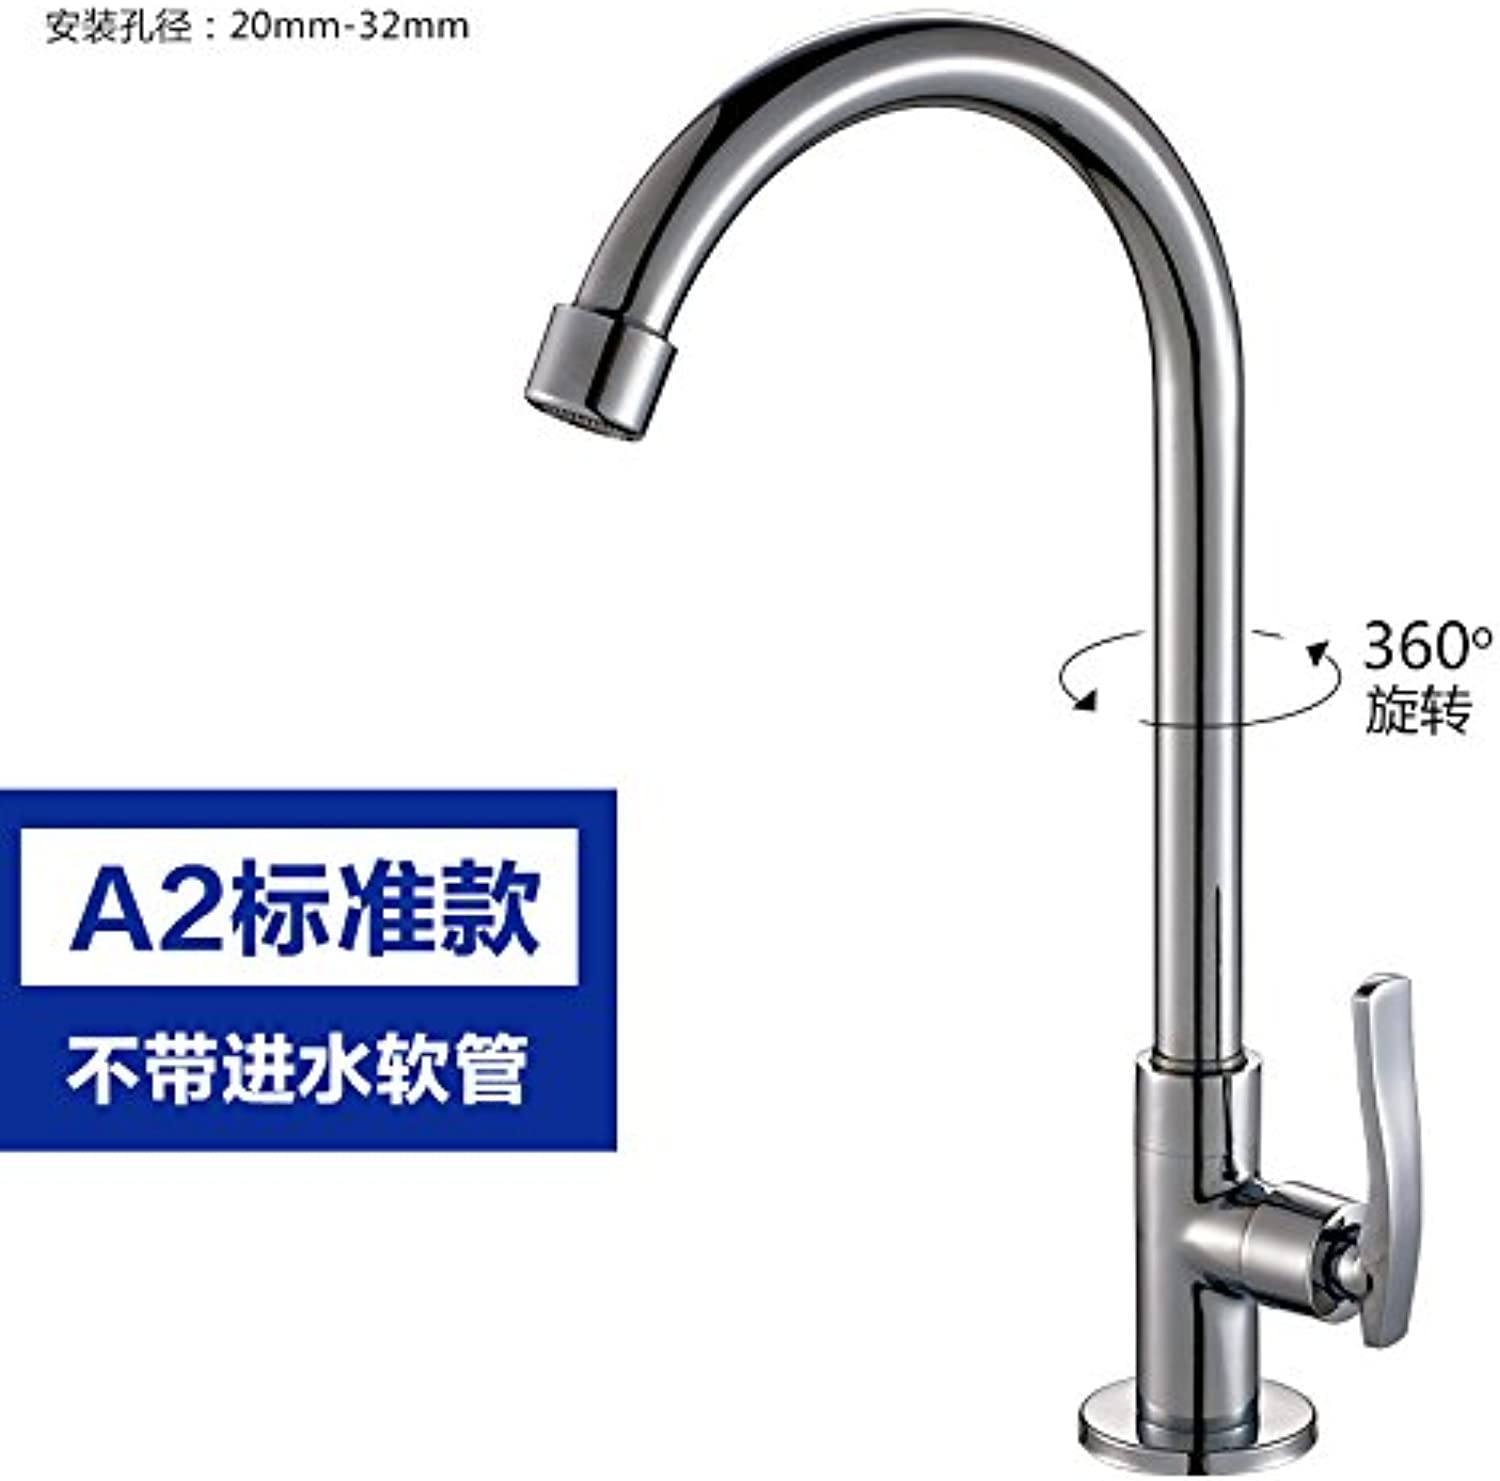 Monepain Pusha Sink Basin Water Copper Faucet Washing Pool Faucet Kitchen Vegetable Washing Basin Faucet,A2 greenical Bend Monomer